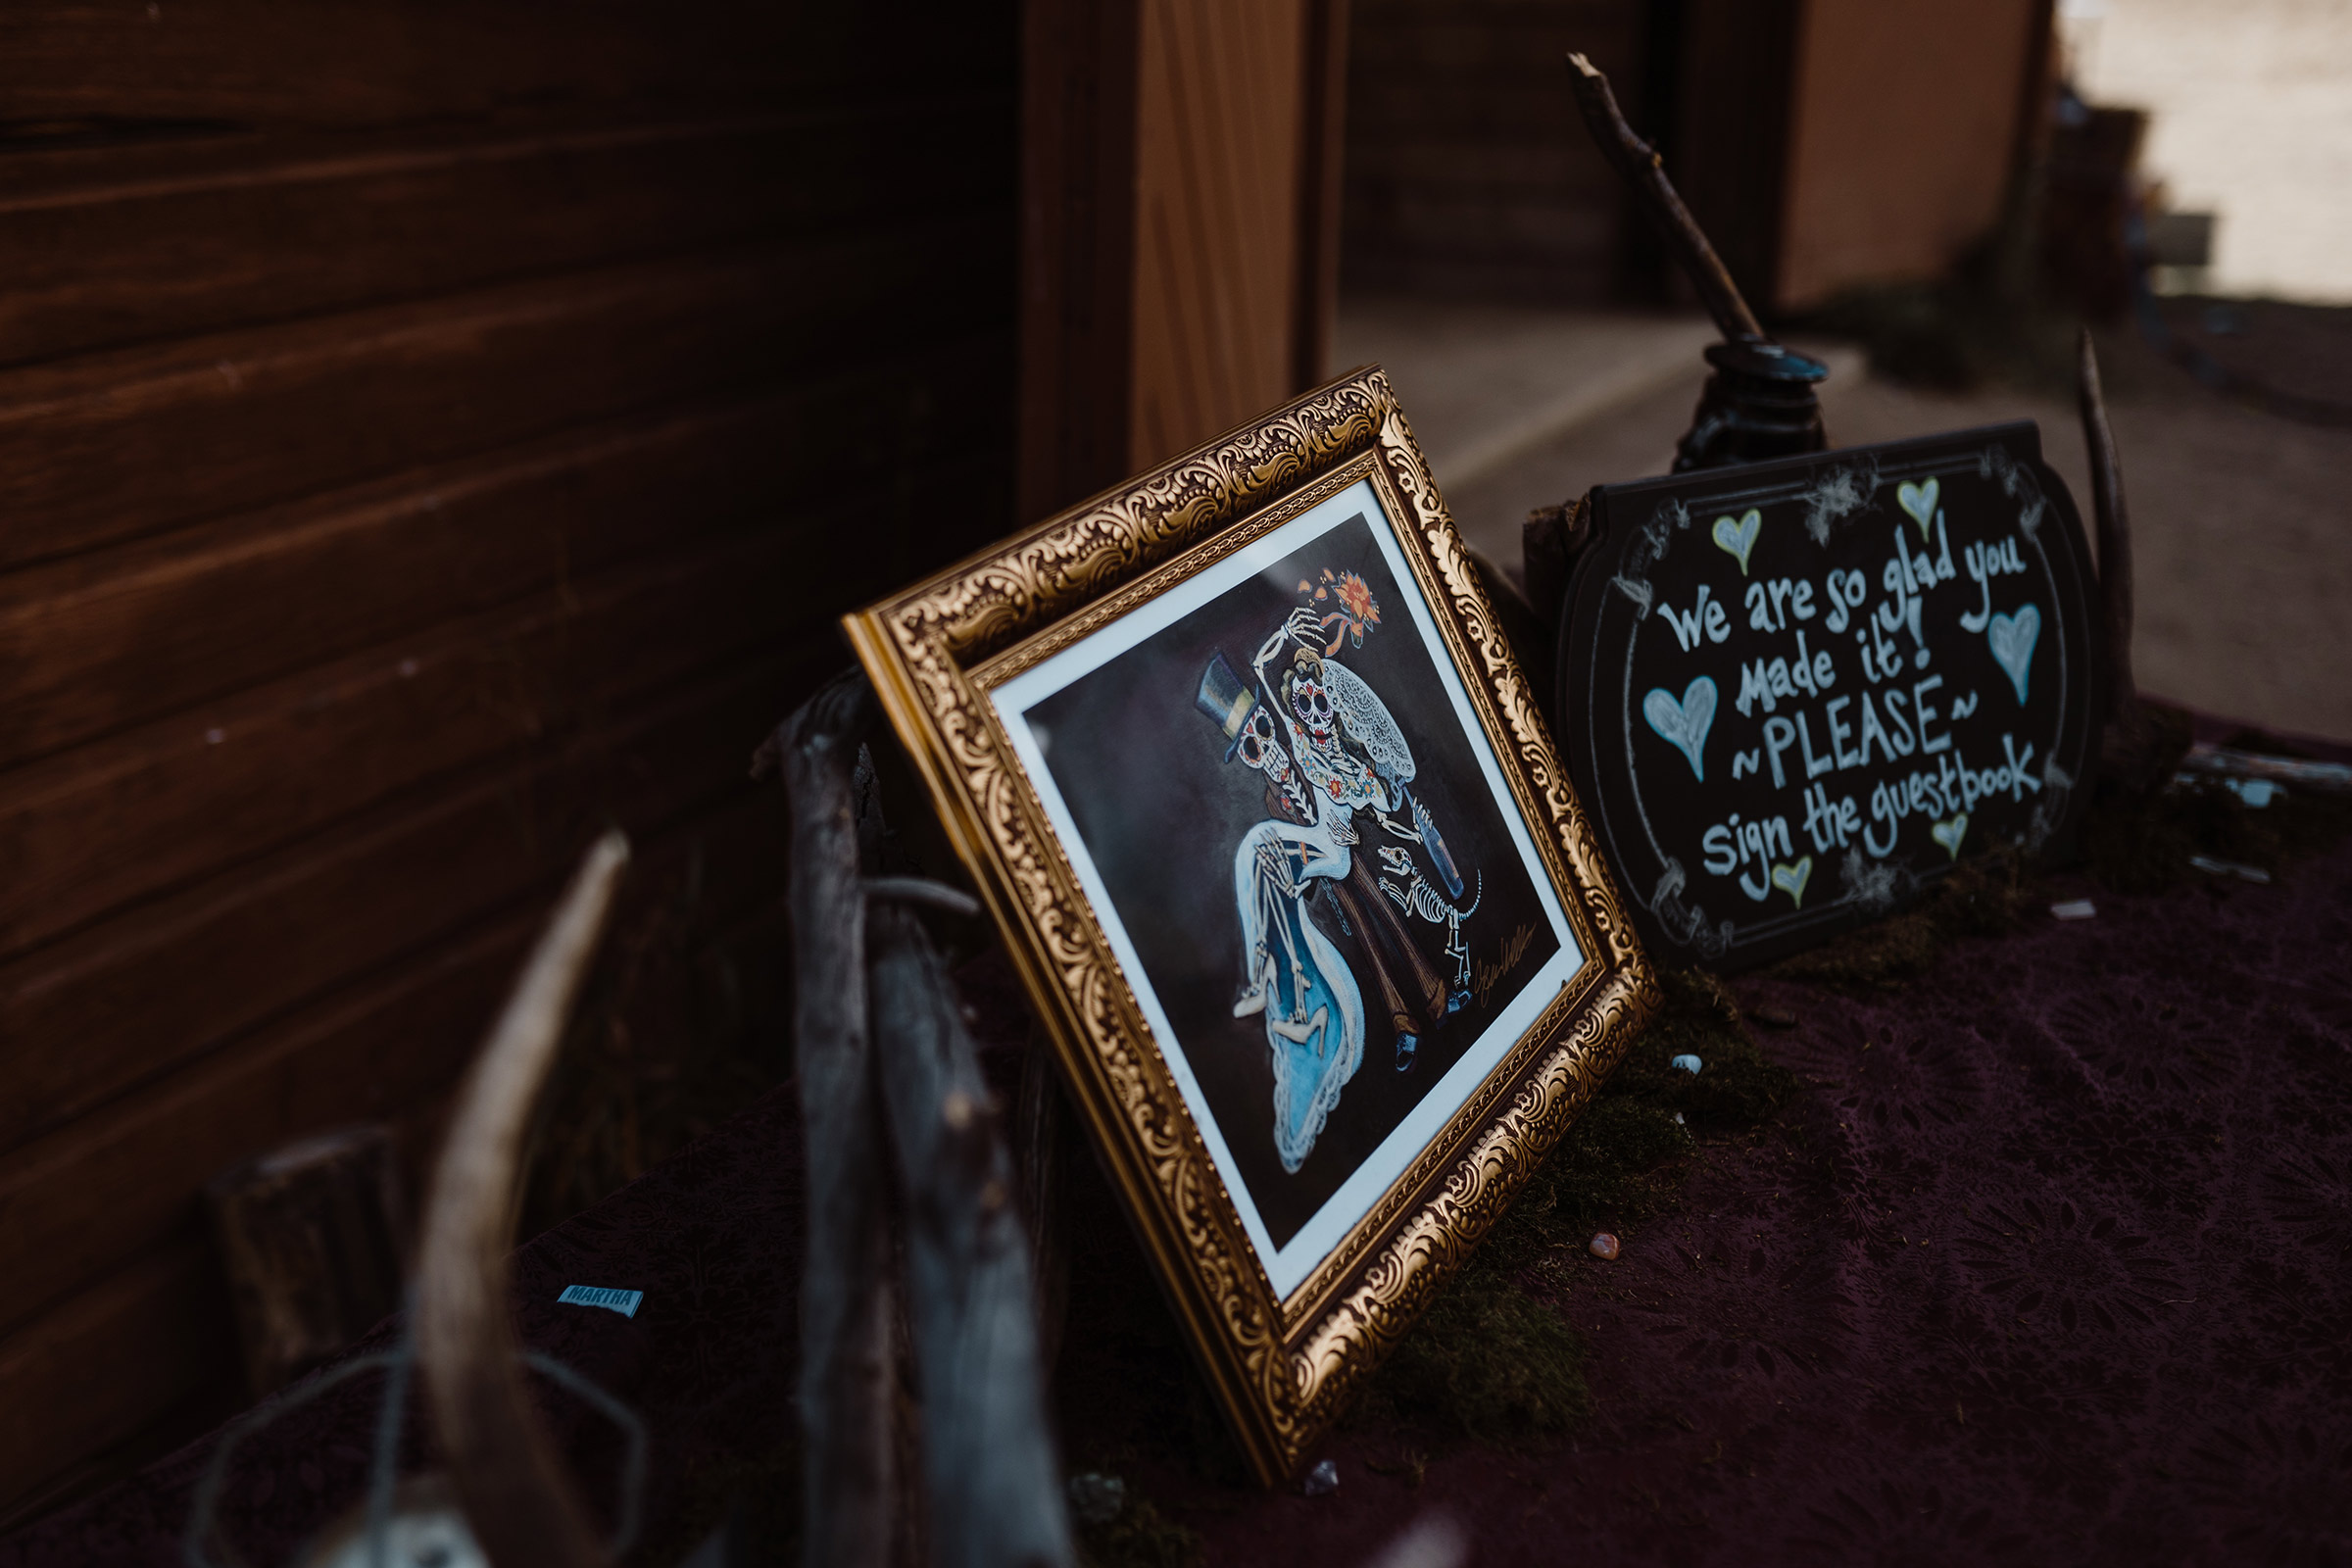 sugar-skull-decorations-entry-table-double-a-barn-grand-lake-colorado-raelyn-ramey-photography-168.jpg